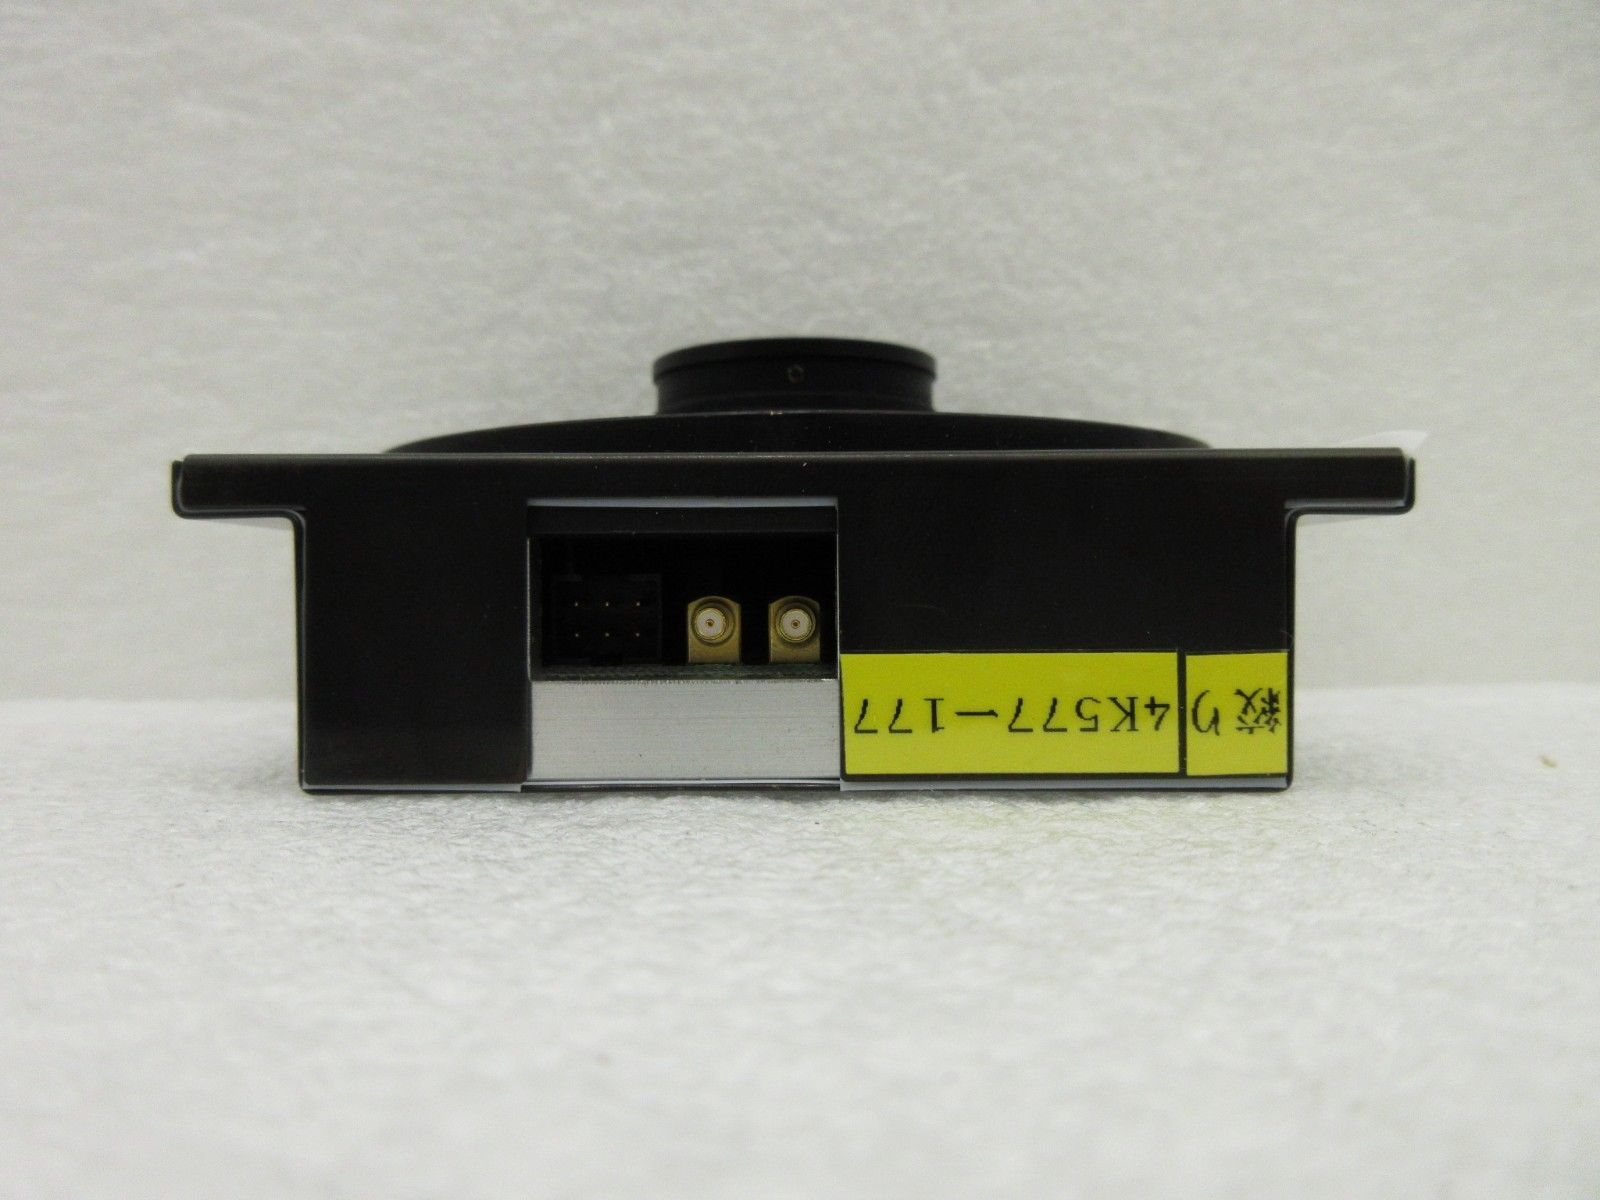 Nikon 4K577-177 Integrator Sensor NSR-S202A Step-and-Repeat System Used Working